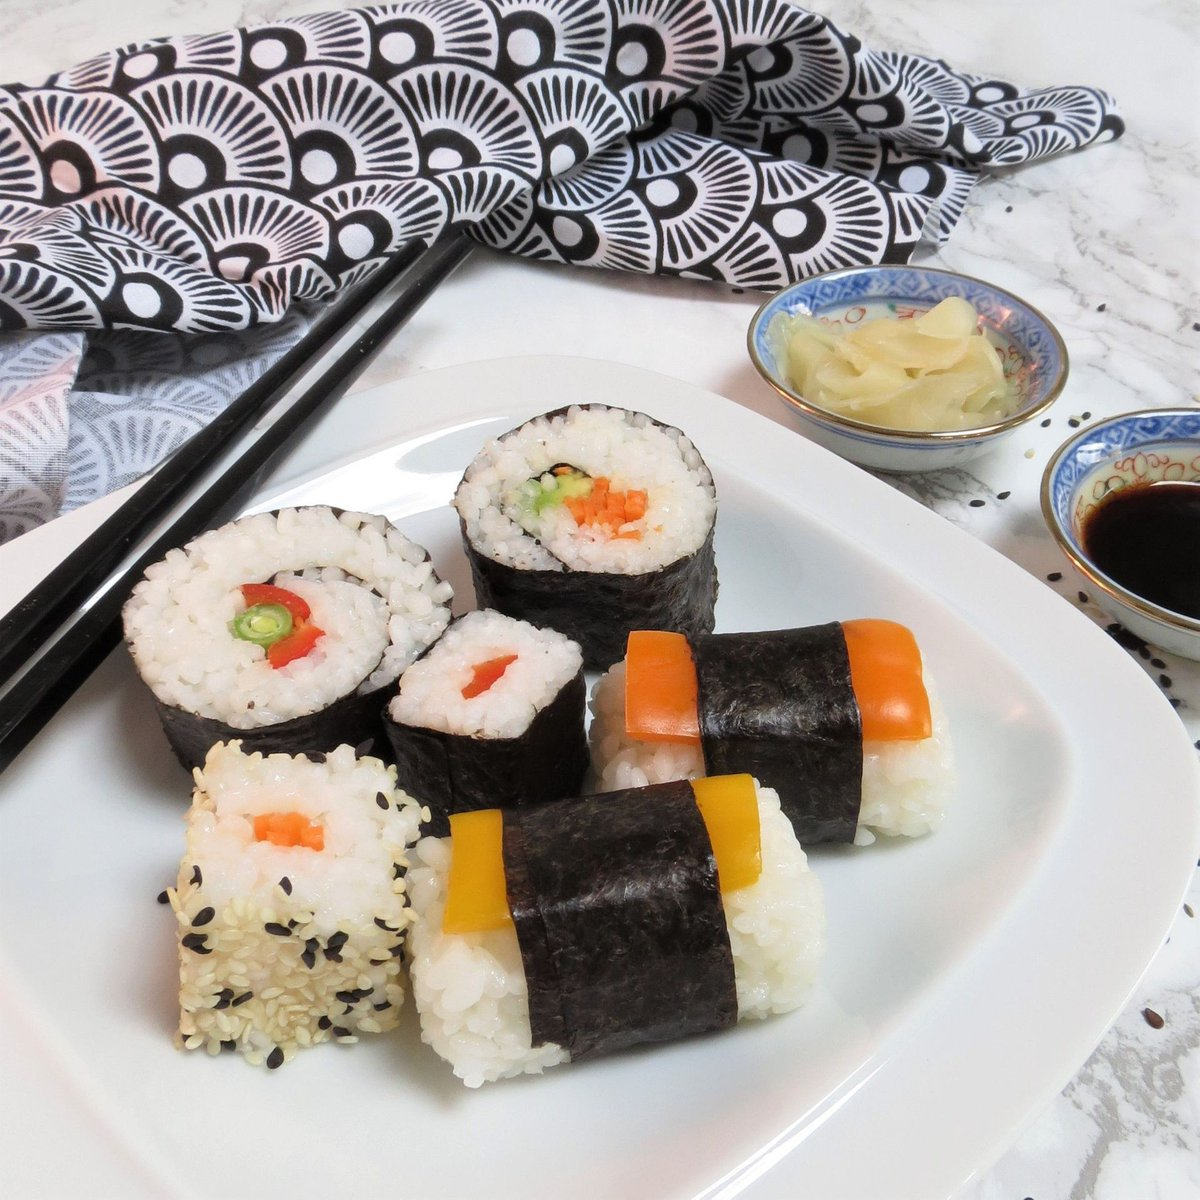 Trust me. If I can make it (short-fuse-woman) then you can too! Gluten Free Homemade Sushi; a step-by-step guide https://buff.ly/2L4ZocE  #vegan #glutenfree (perfect way to store is using @igluumealprep containers use CODE glutarama10 to get 10% off - not an ad or affiliation)